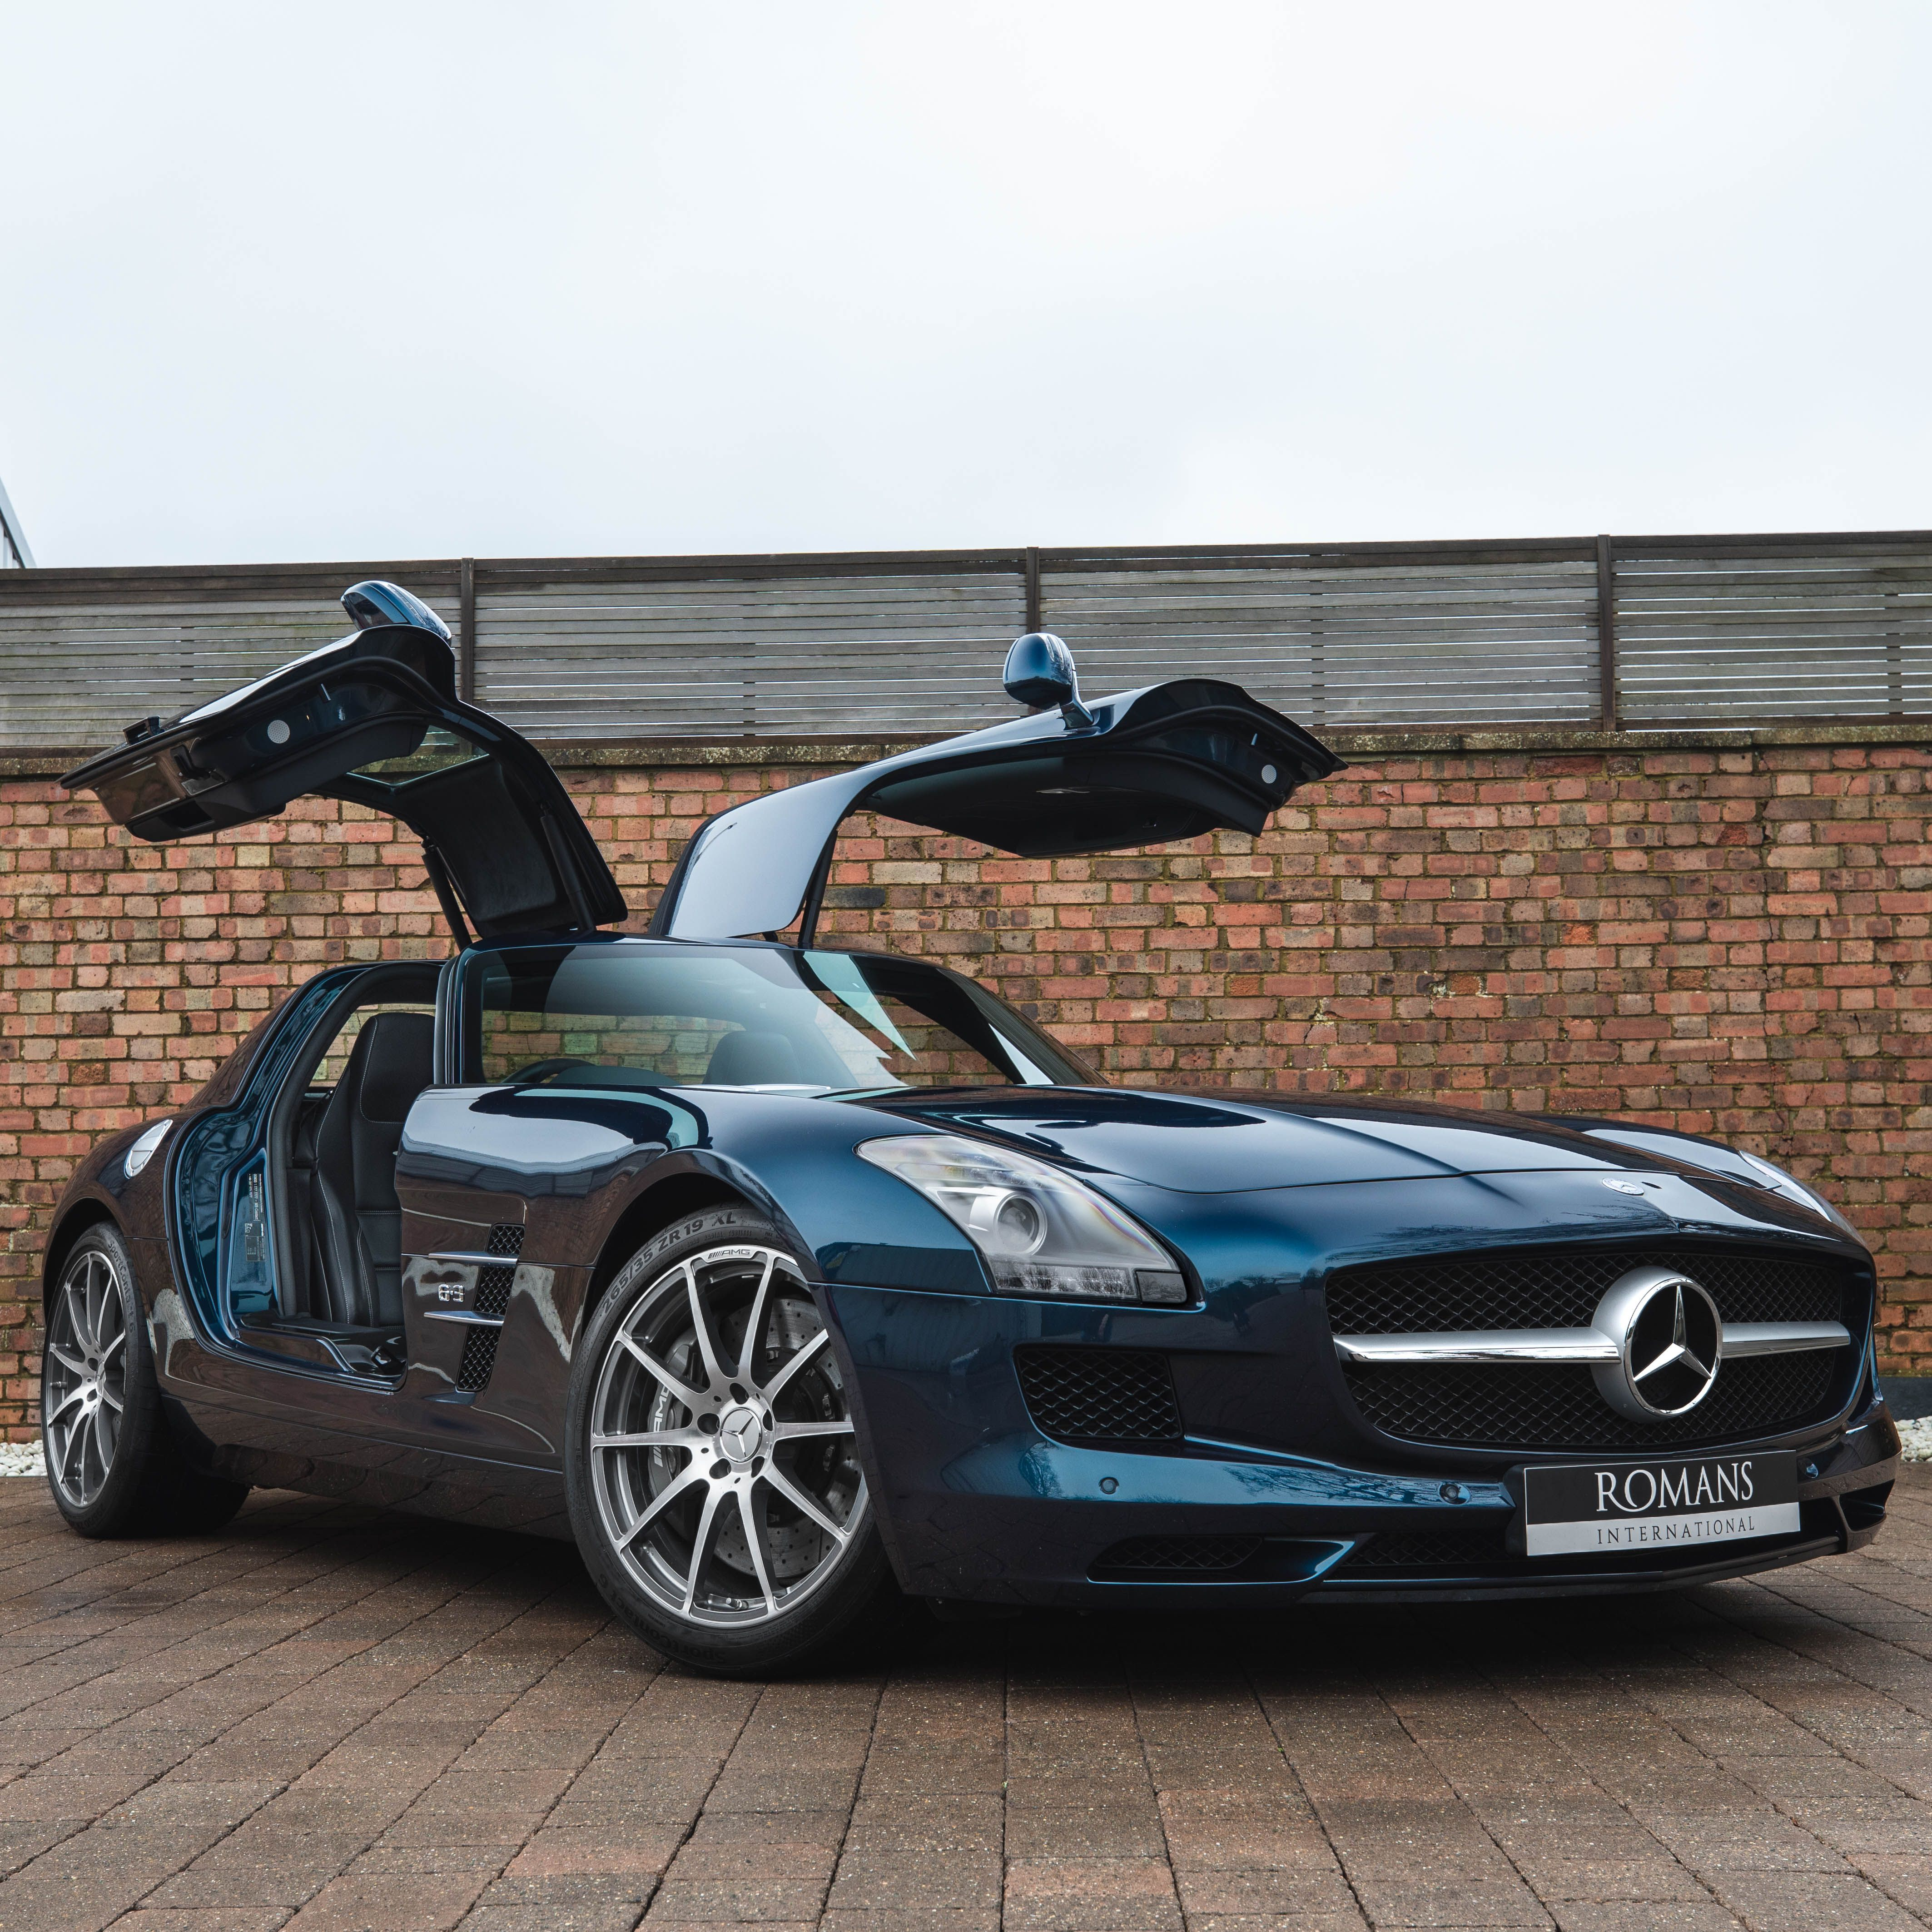 Retro Styling Long Smooth Lines And Iconic Gullwing Doors In 2021 Mercedes Benz Sls Mercedes Benz Sls Amg Used Mercedes Benz